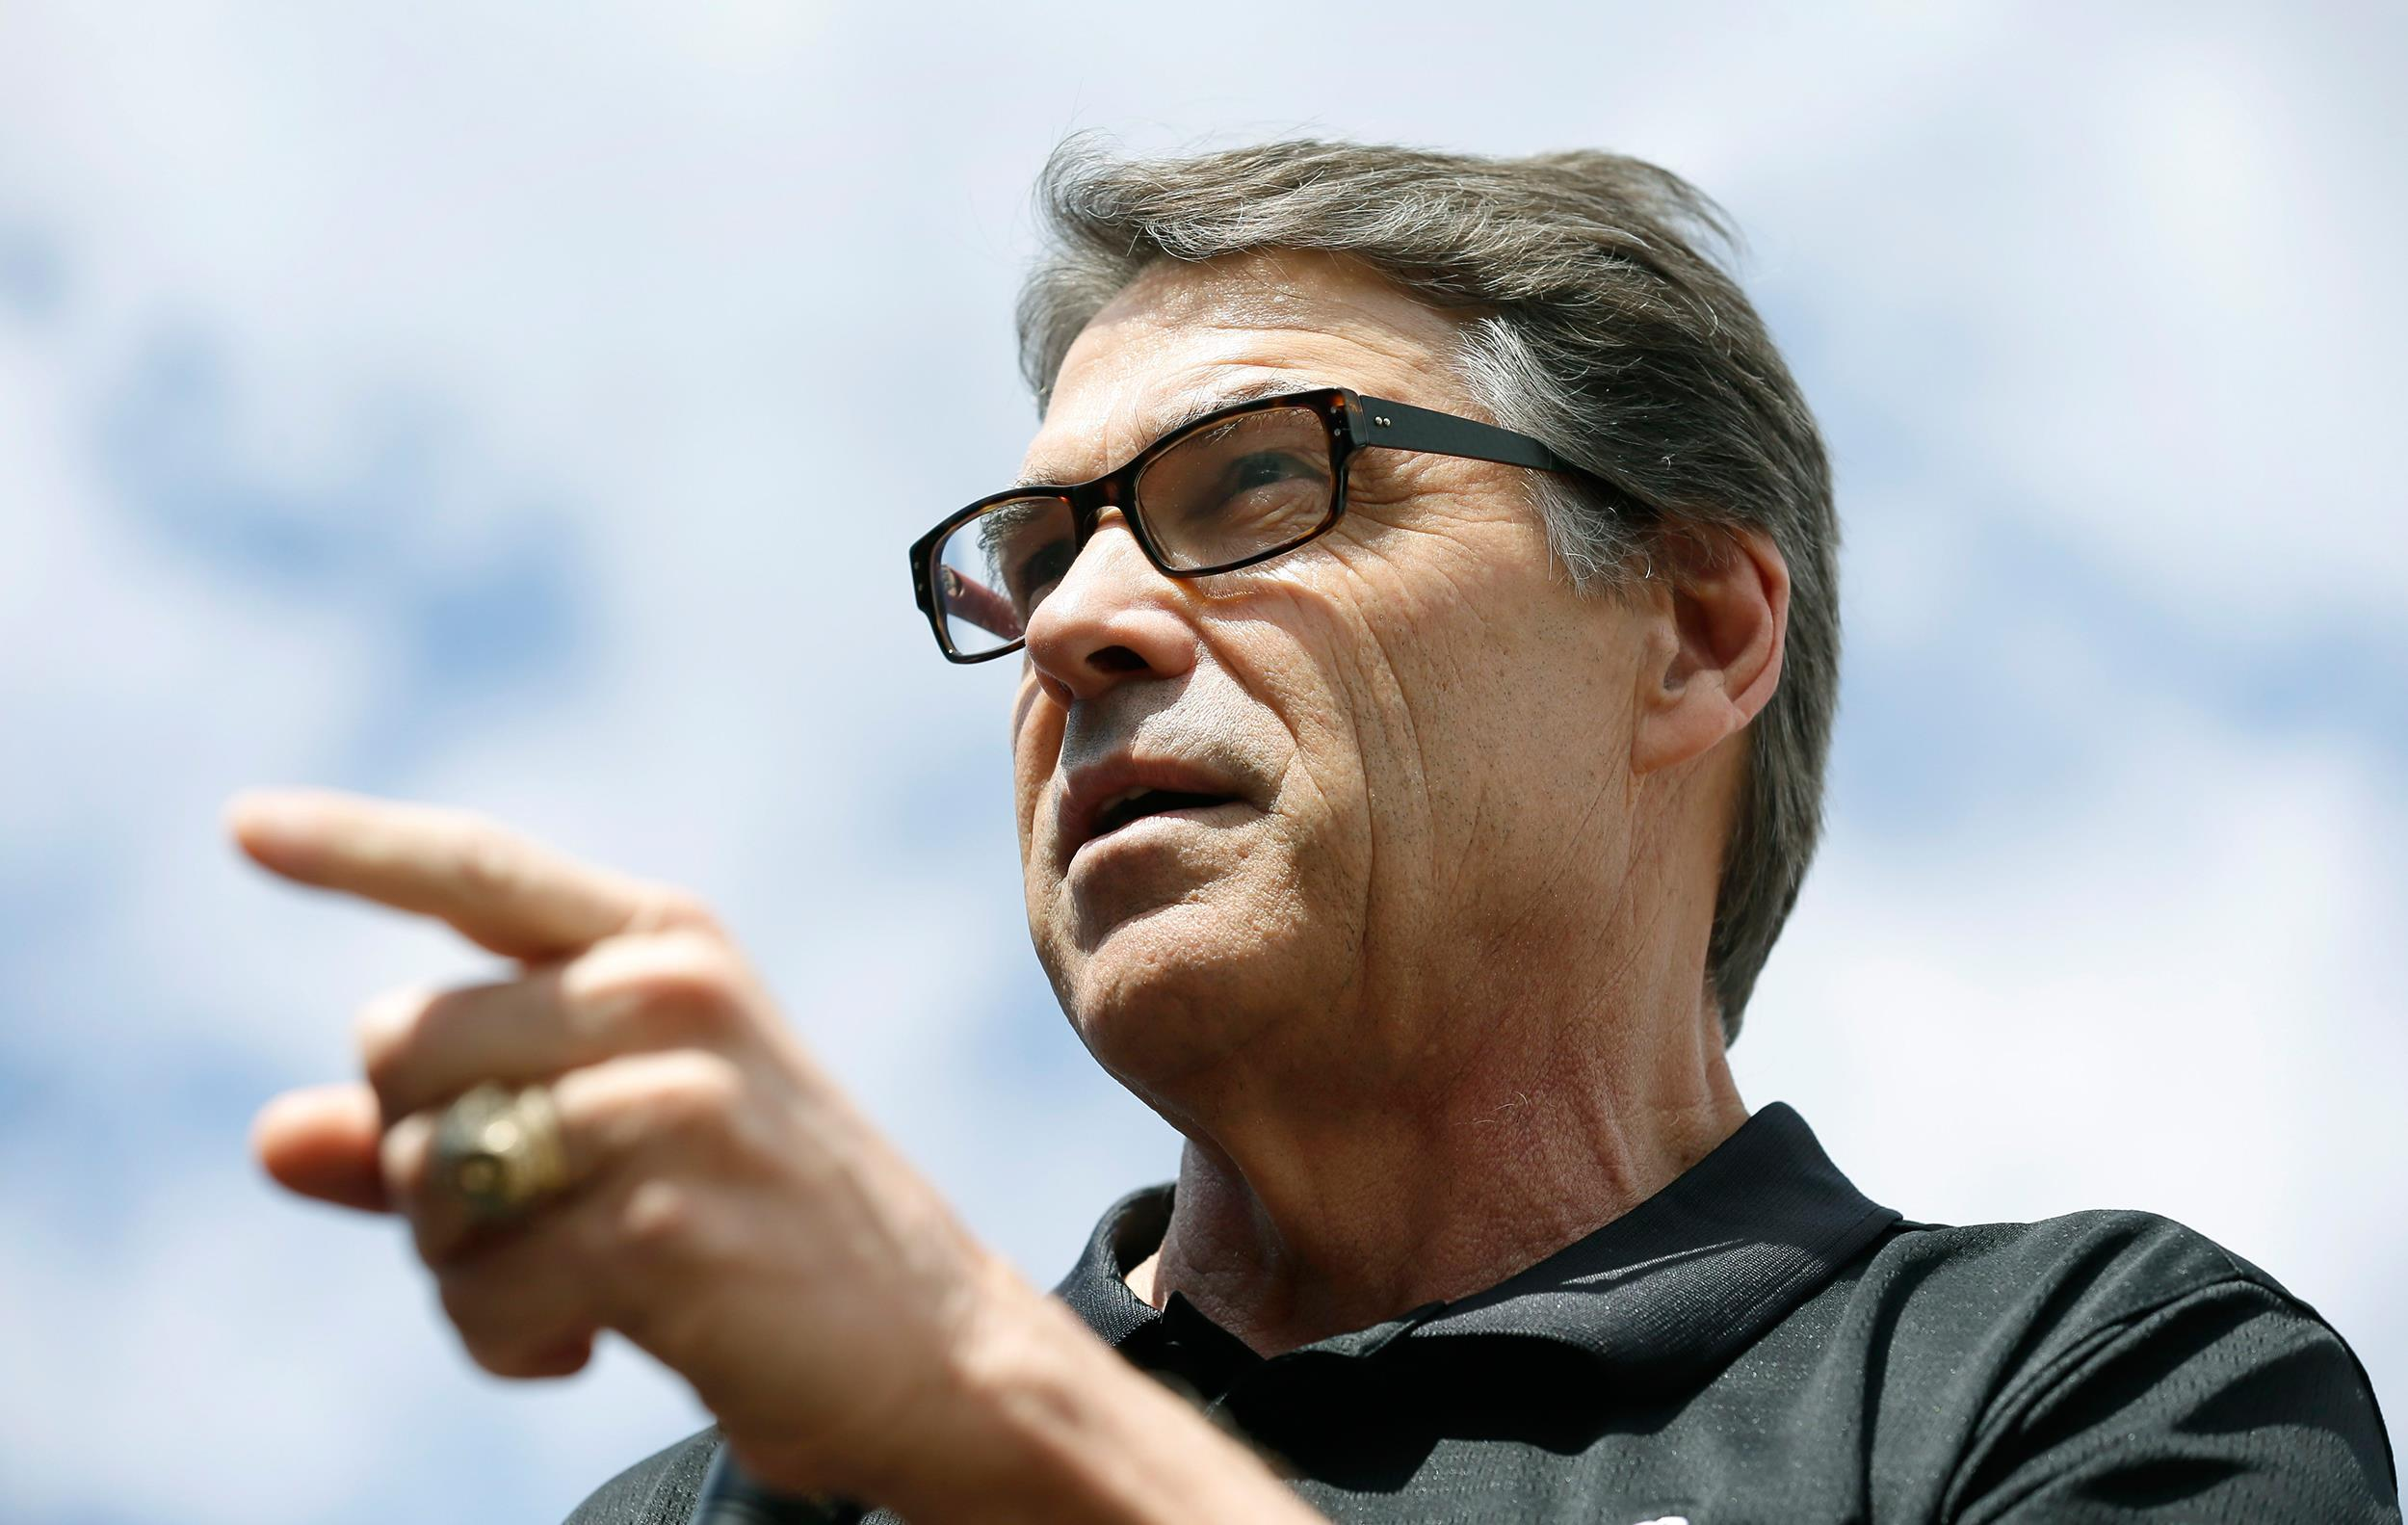 Image: Rick Perry